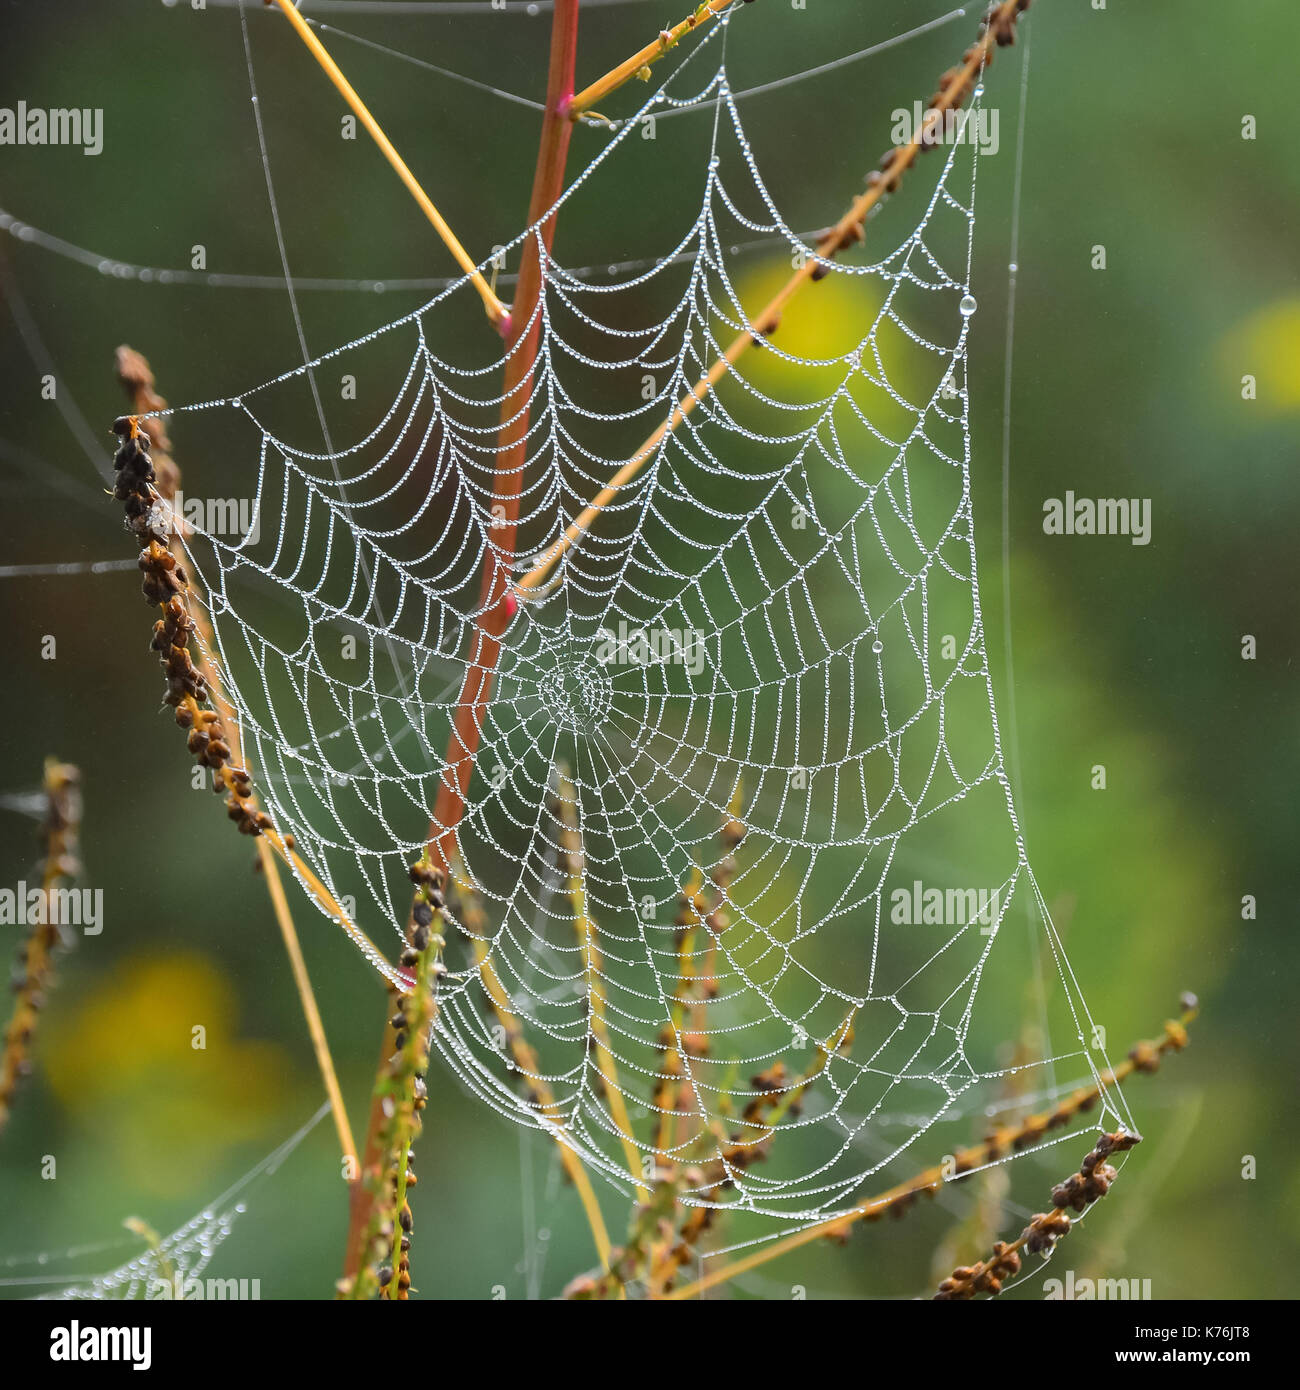 dew-covered-spider-web-on-tree-branches-